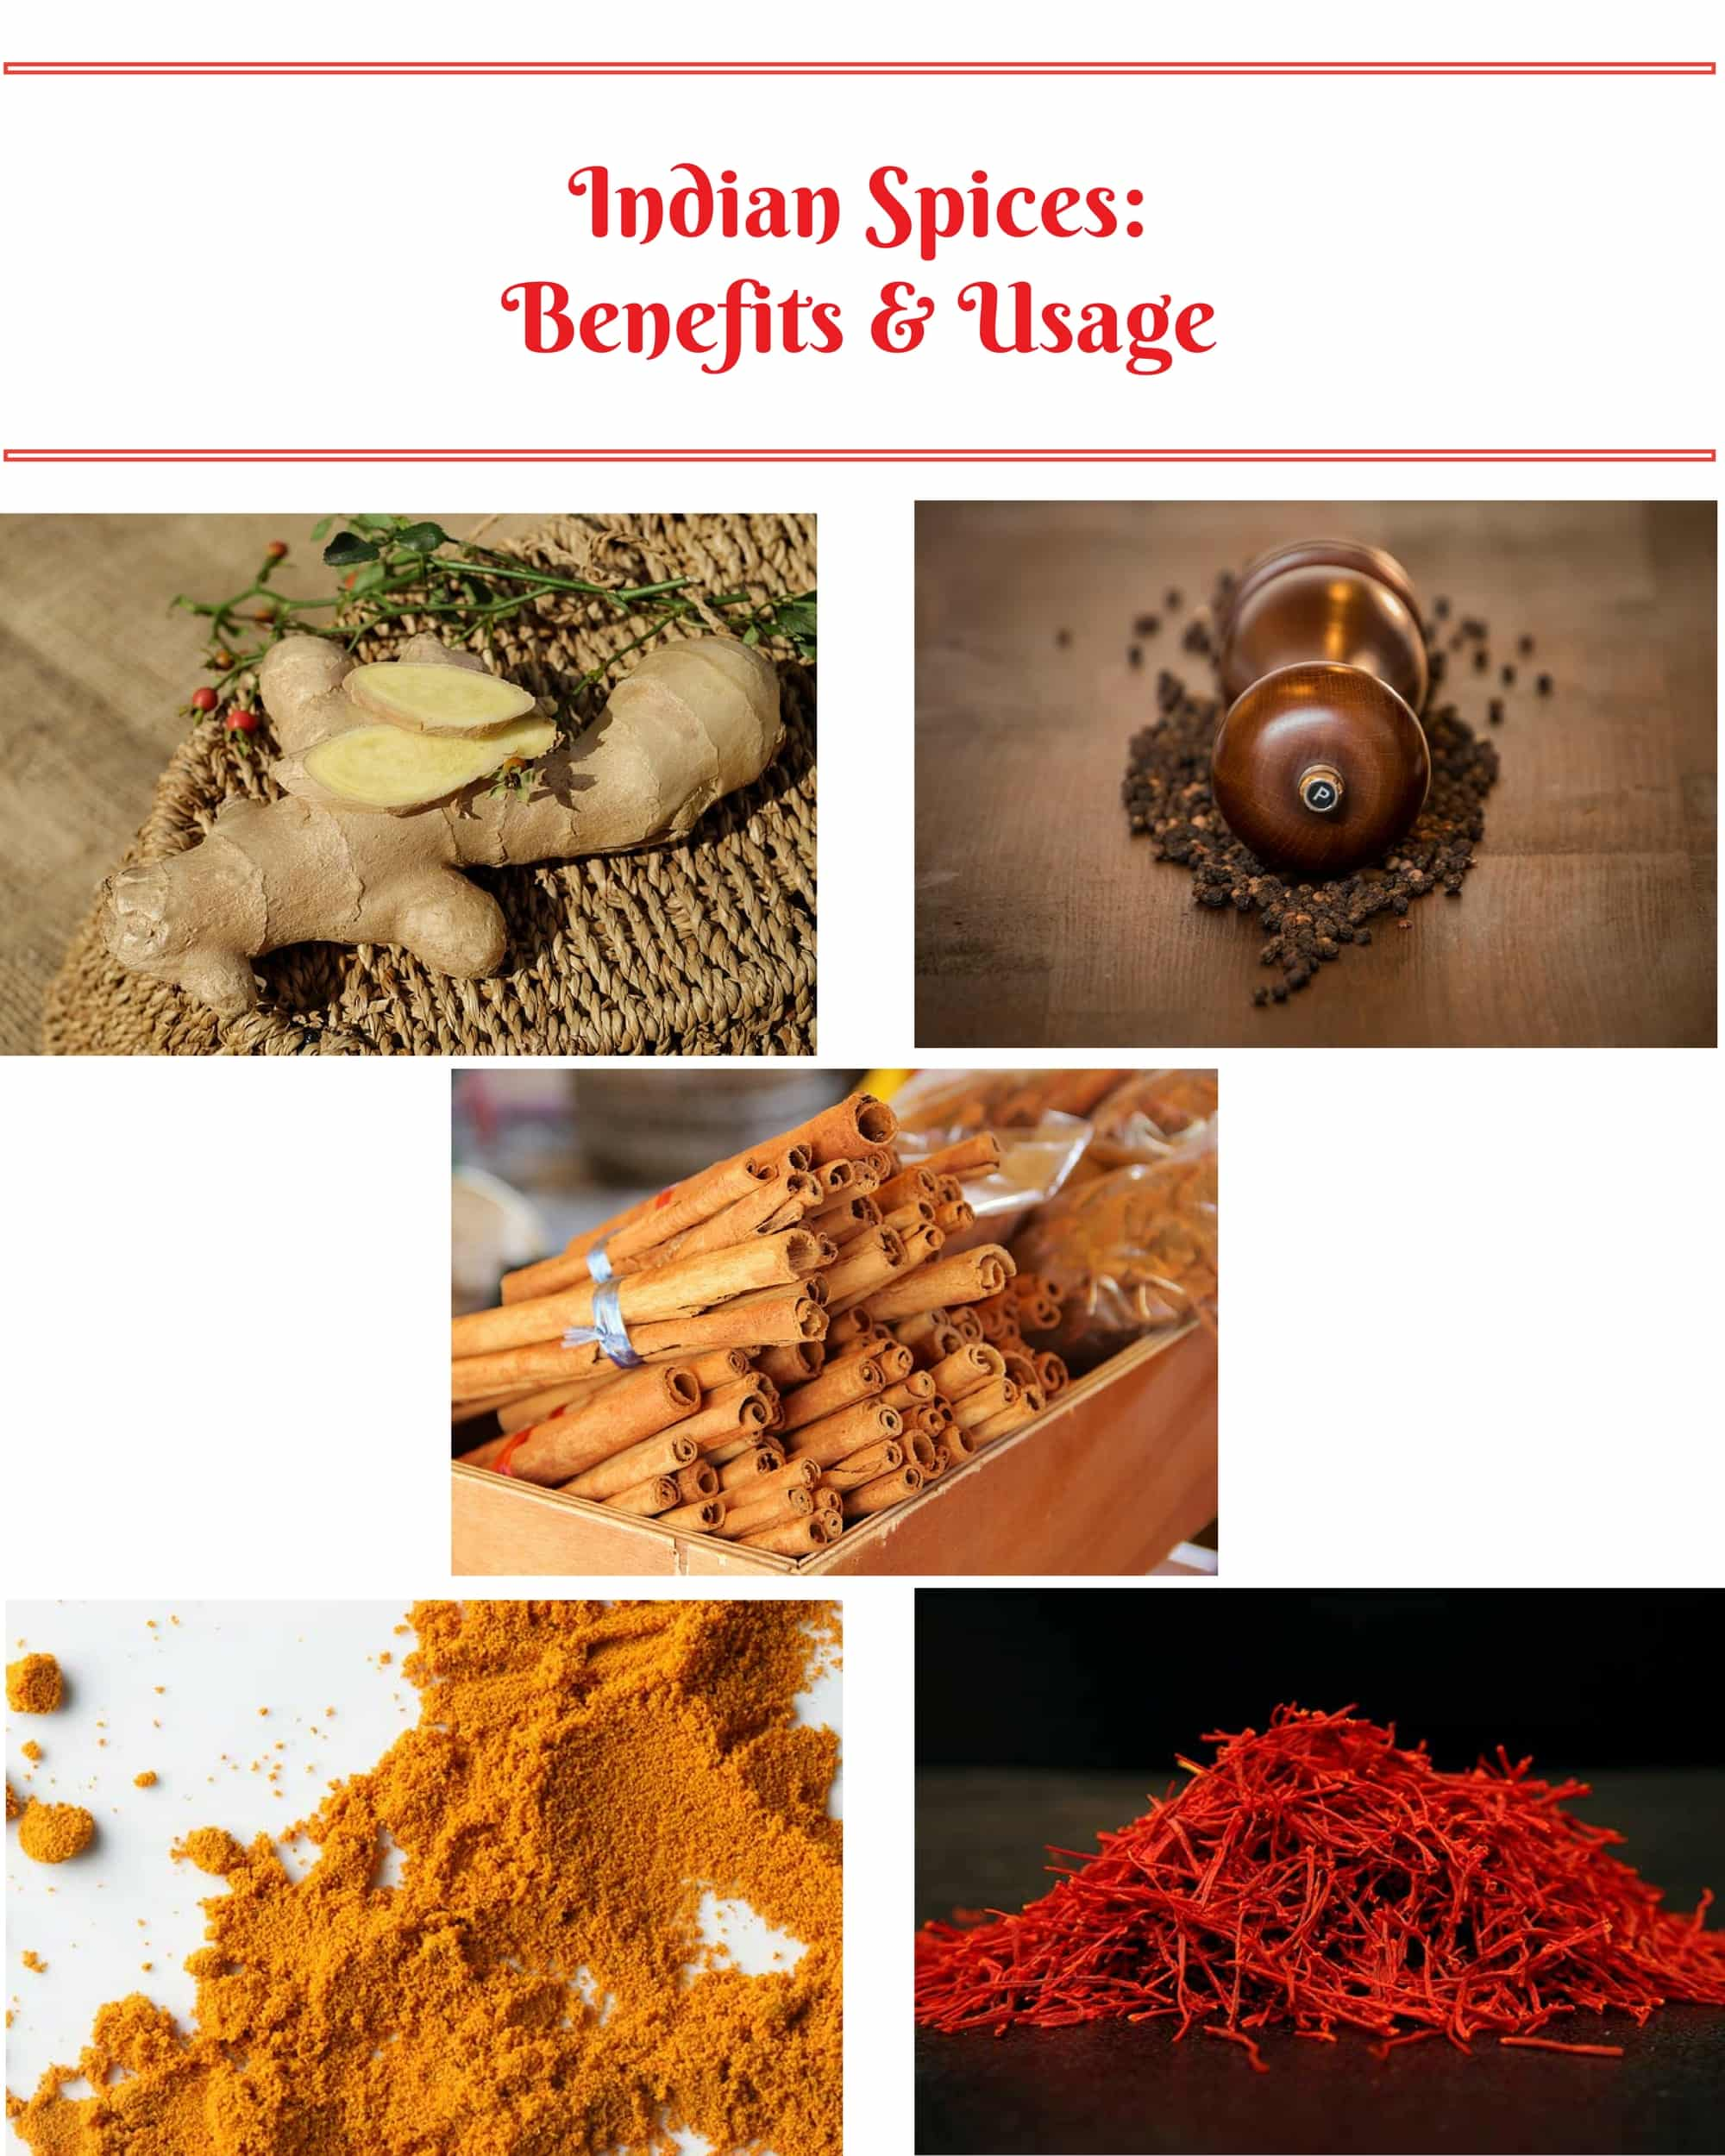 Indian Spices: Benefits and Usage|poojascookery.com